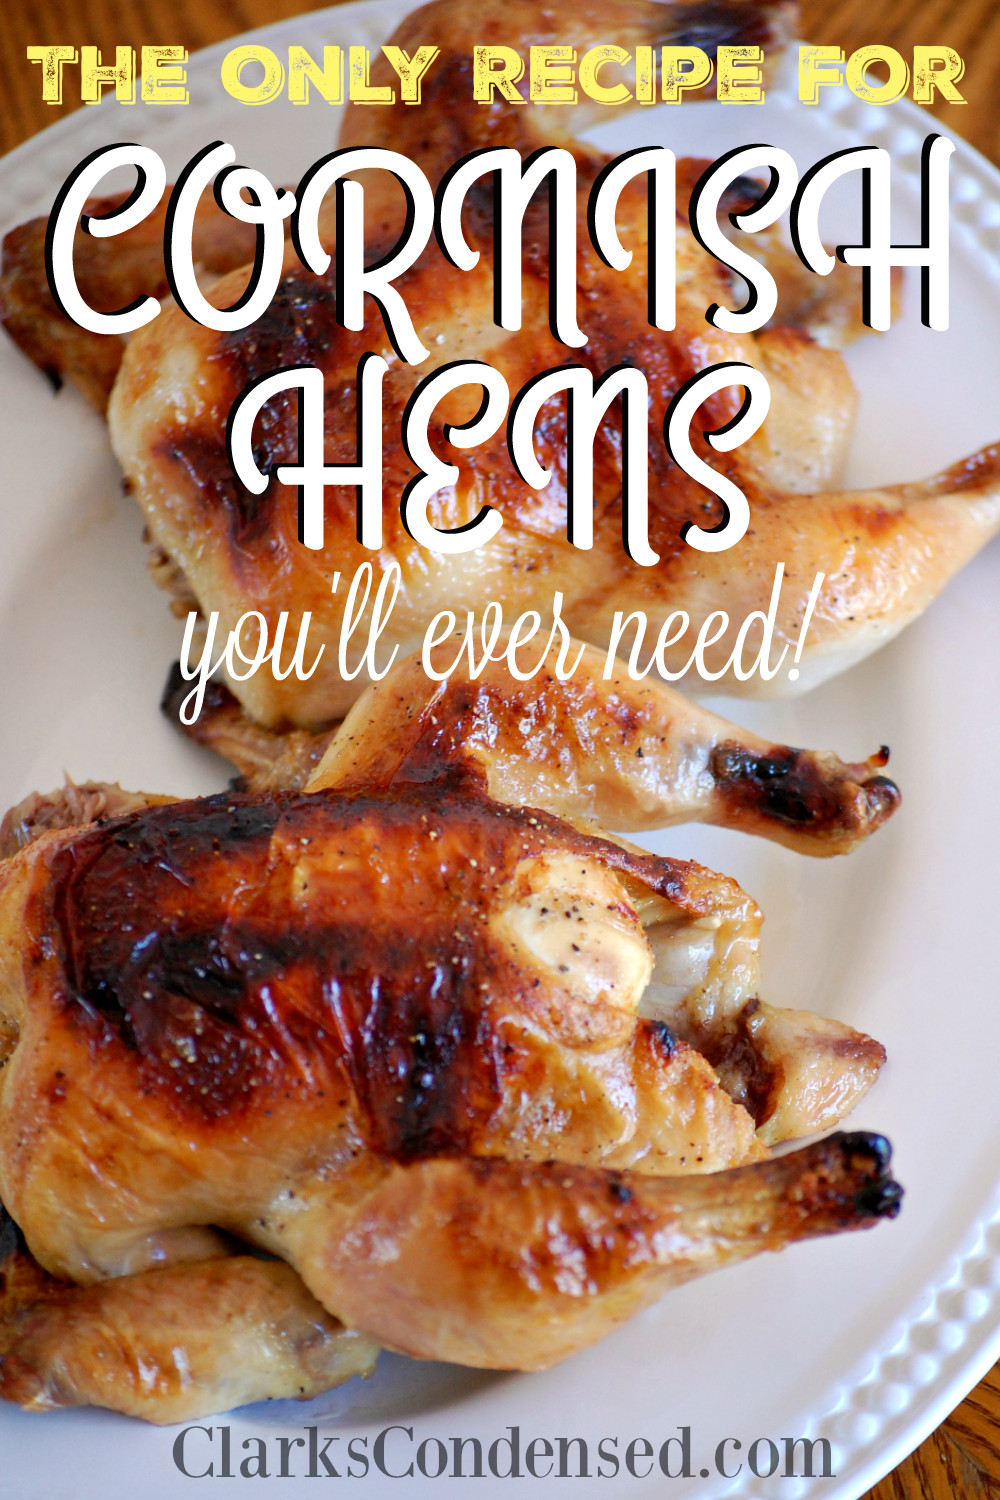 Recipe Cornish Game Hens  The ly Recipe for Cornish Hens You Will Ever Need